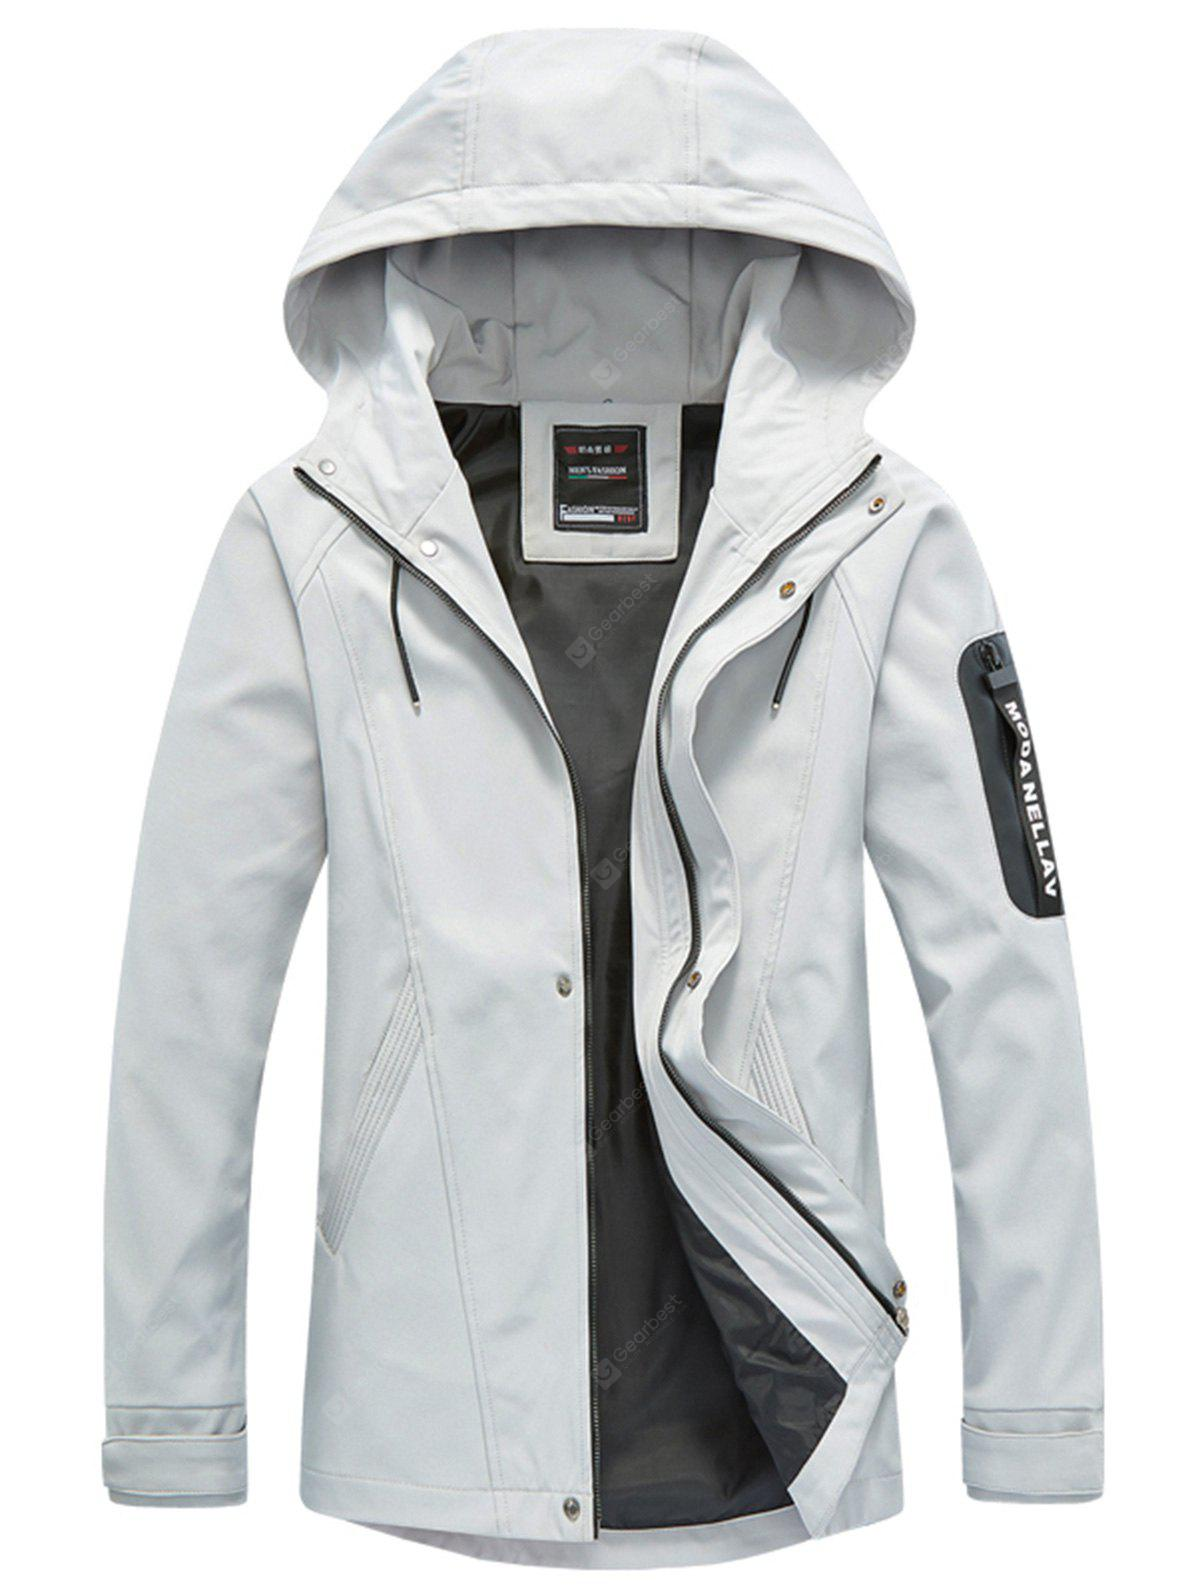 Zip Up with Snap Button Hooded Jacket